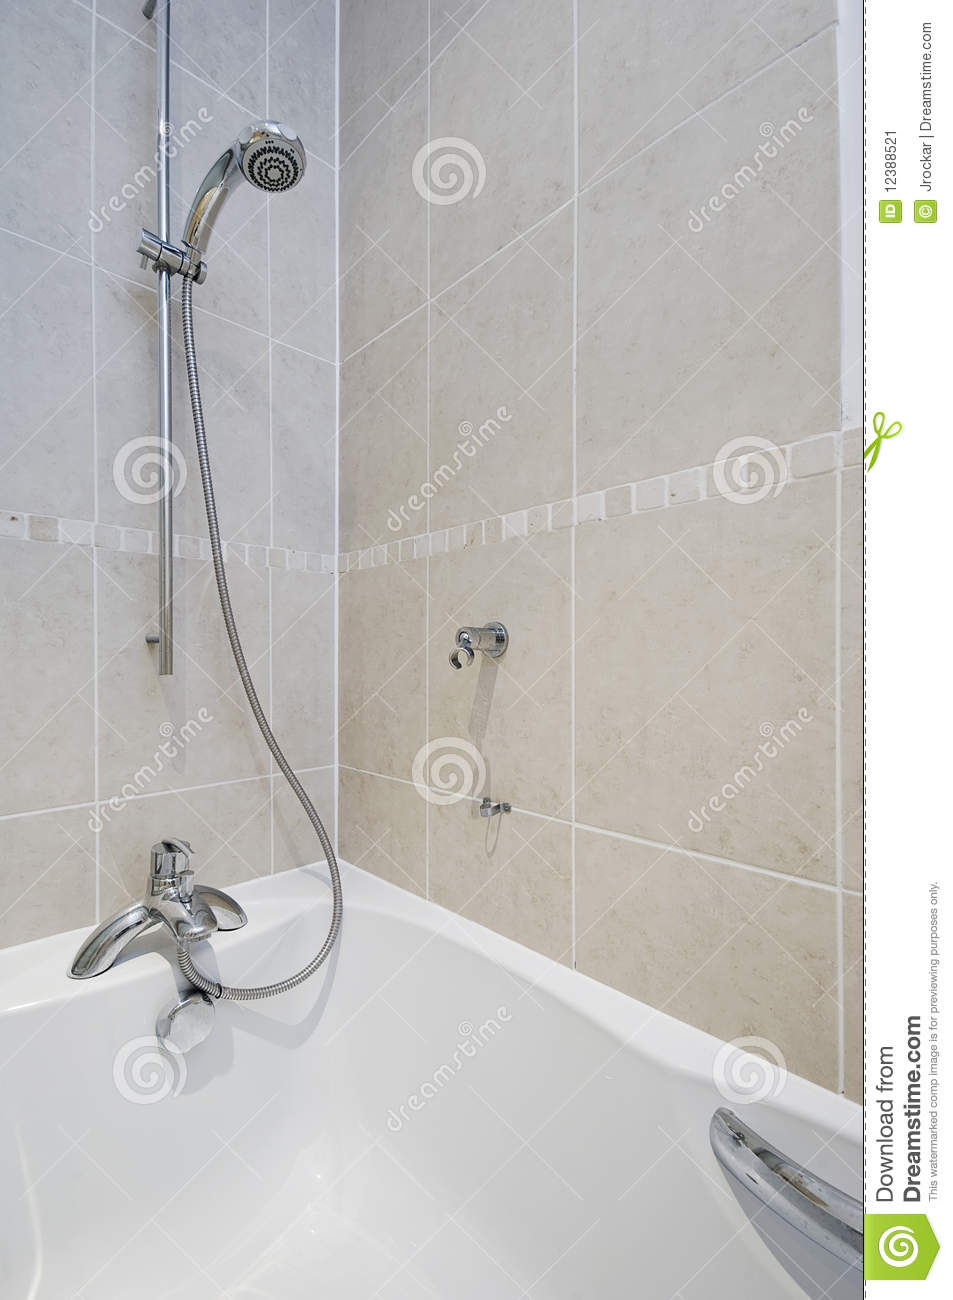 Shower attachment detail stock image Image of ceramic